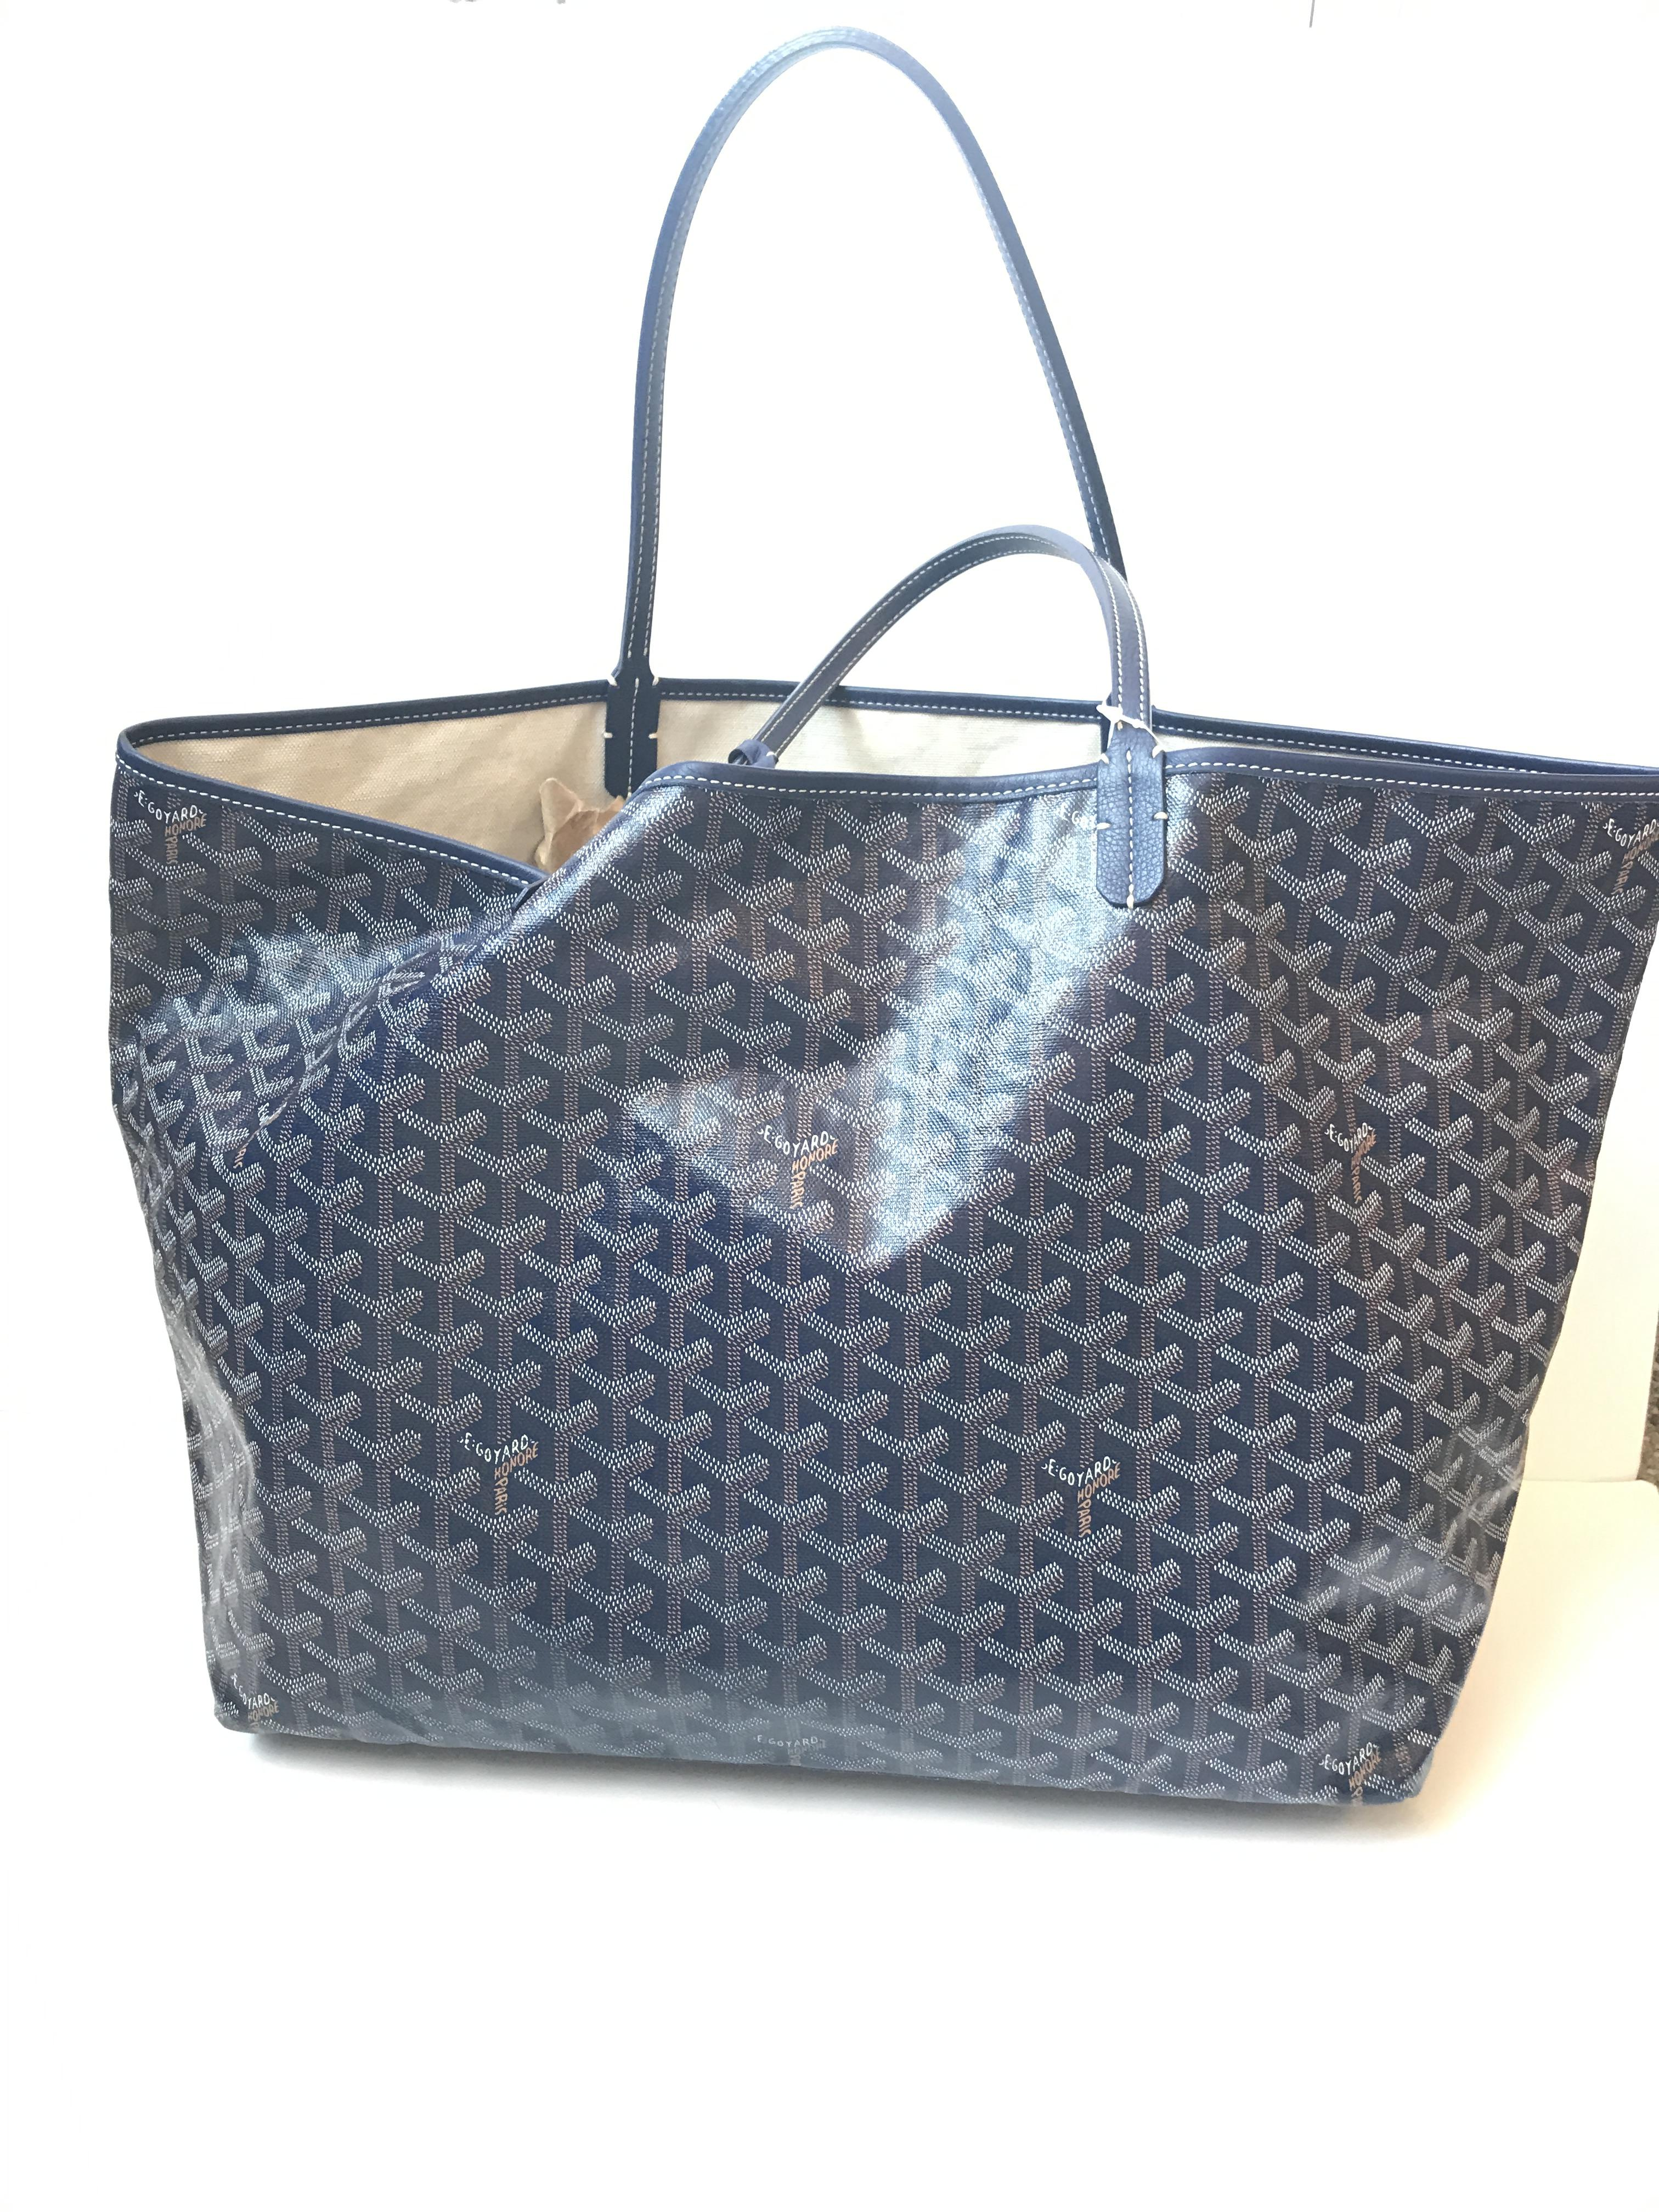 Goyard Purses, Handbags Price: $1096.99